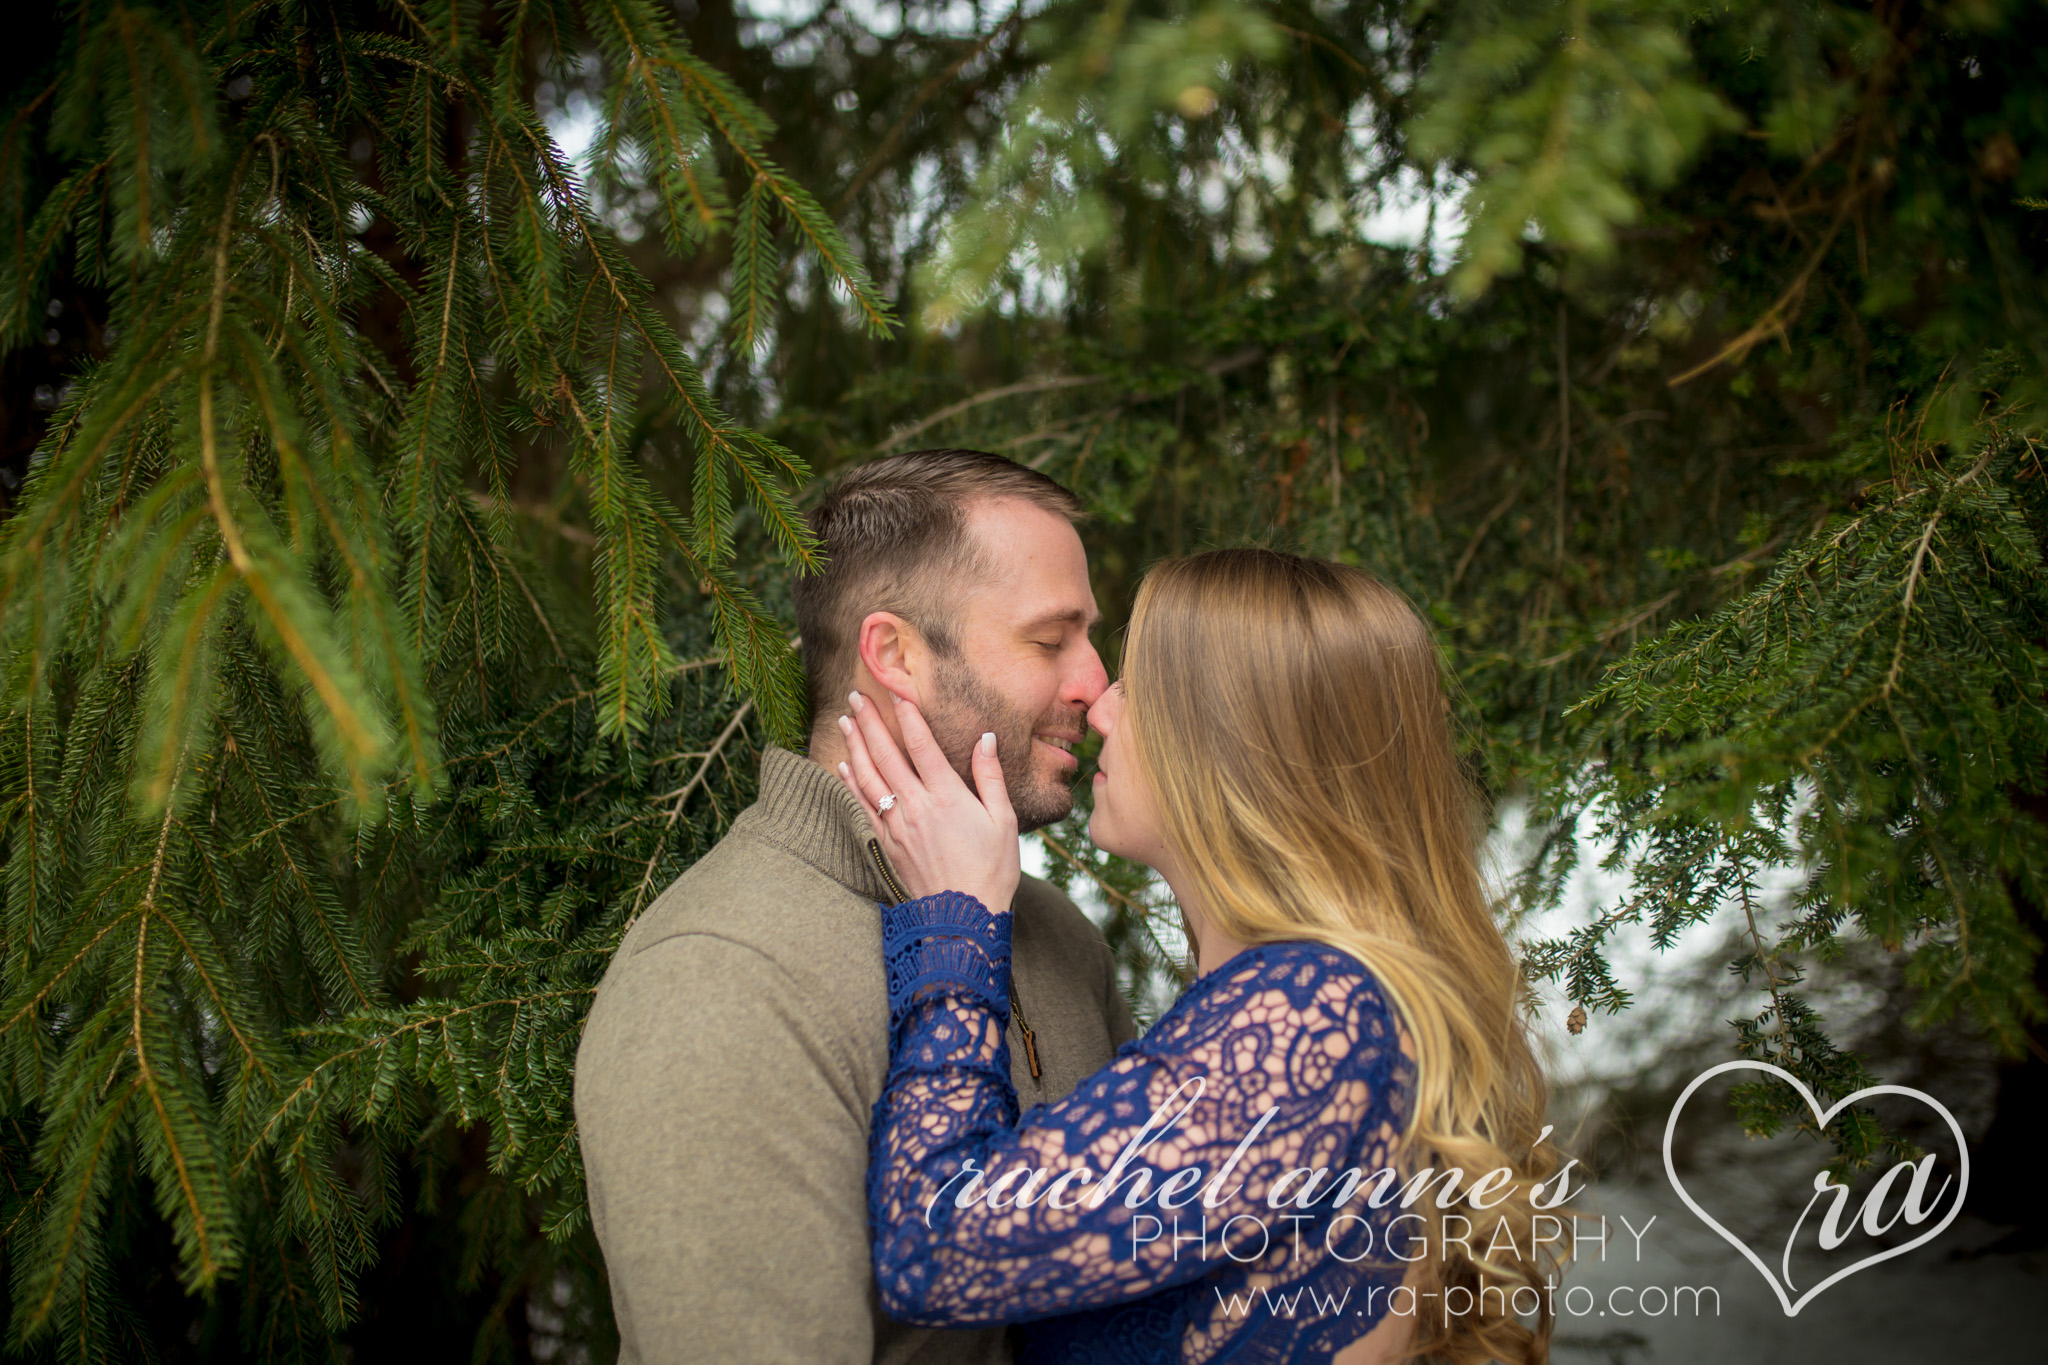 073-JKM-DUBOIS-PA-ENGAGEMENT-PHOTOGRAPHY.jpg